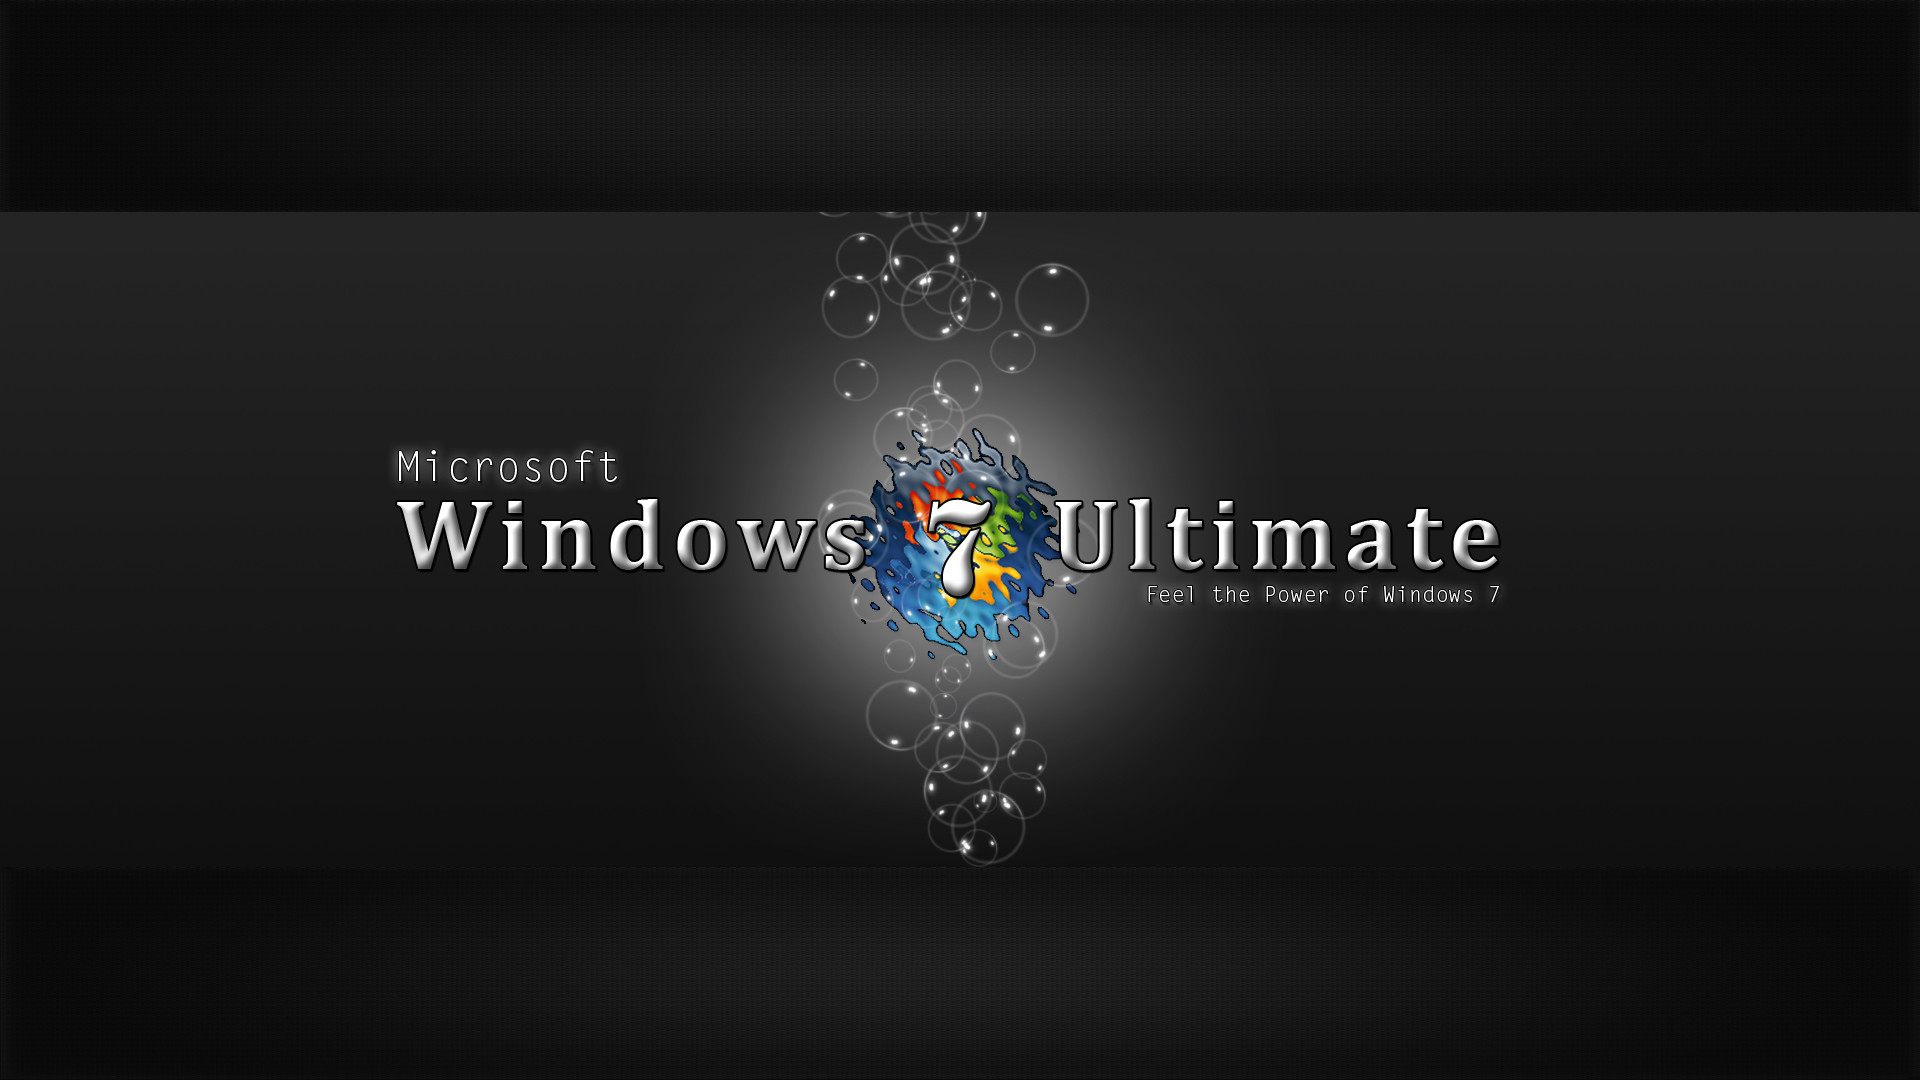 1920x1080 feel the Power Of Windows 7 HD Wallpapers for Windows 7 Ultimate